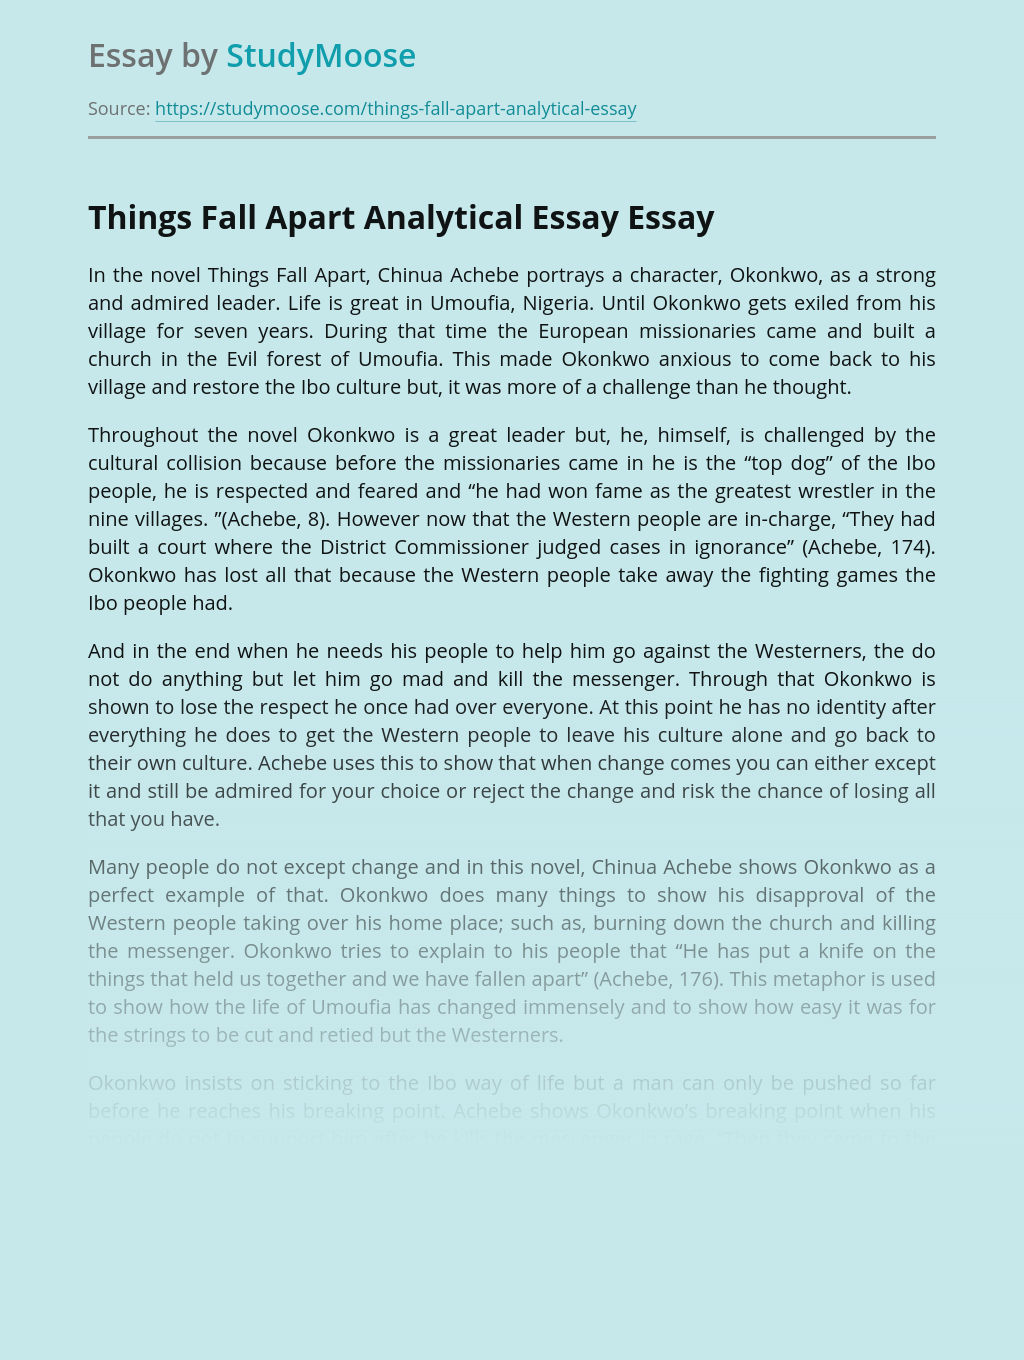 Things Fall Apart Analytical Essay